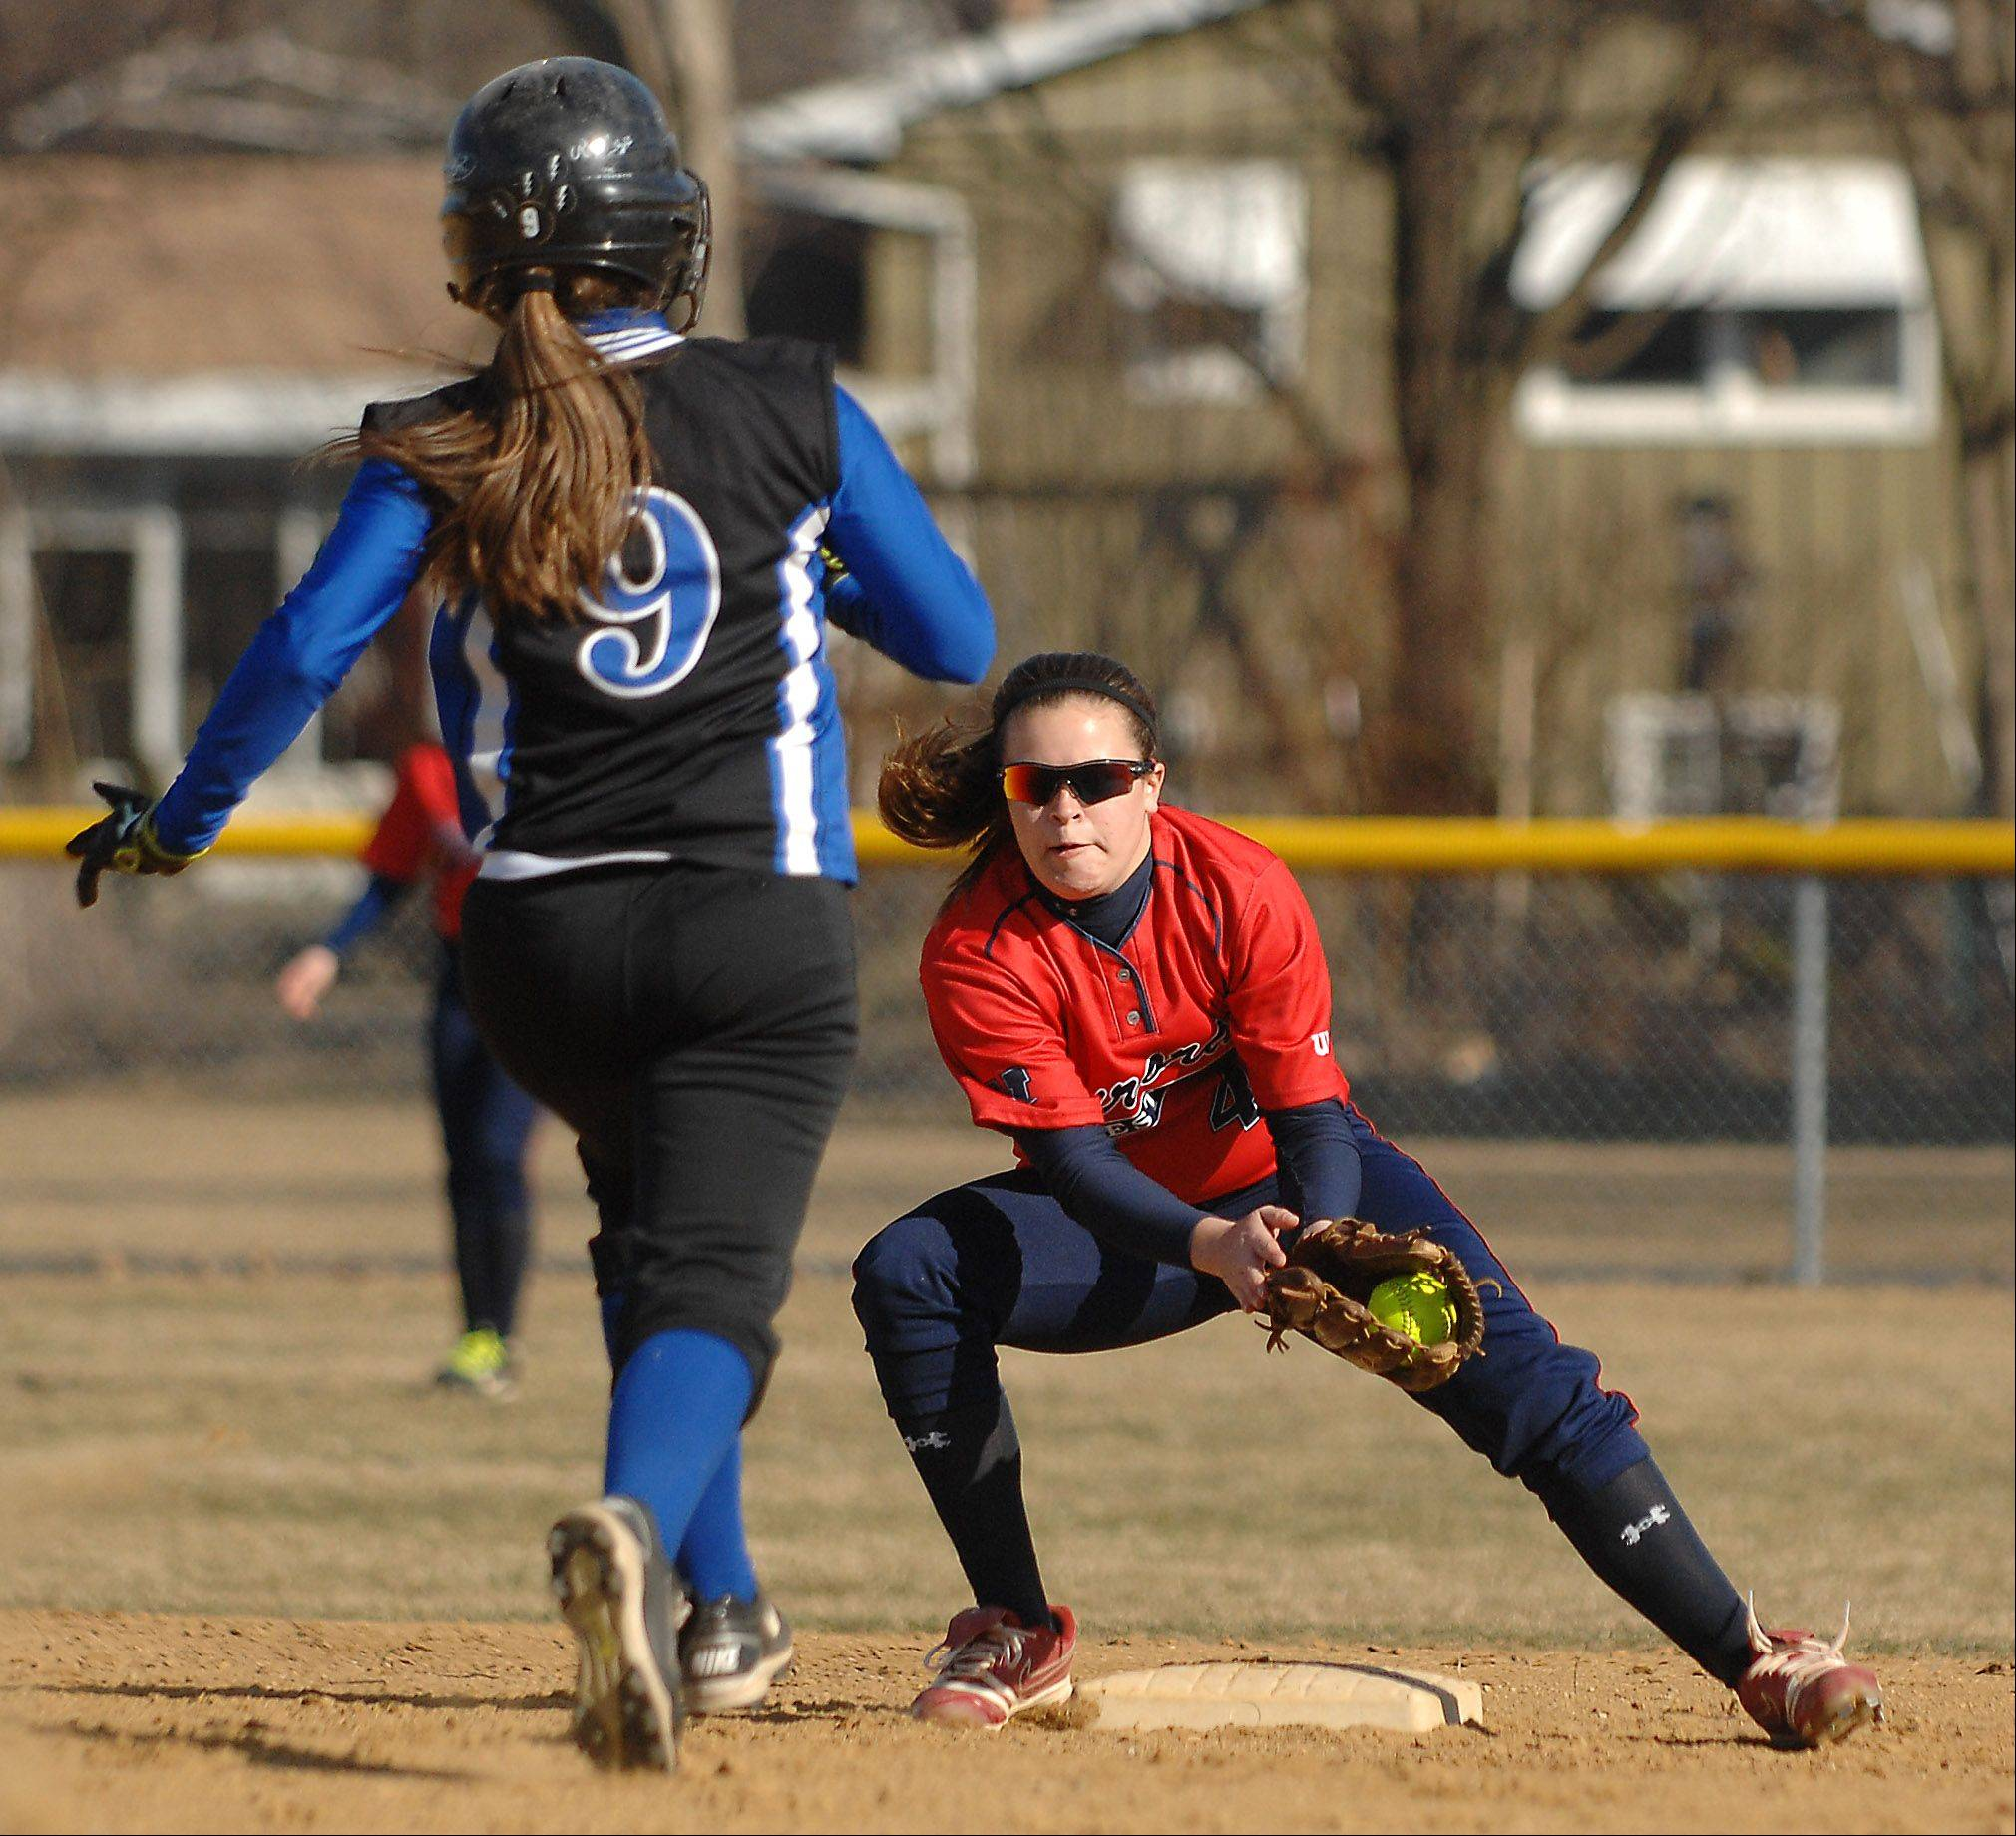 West Aurora's Taylor Podshweit prepares to tag out Rosary's Emma Molenhouse on a stolen base attempt during Thursday's game in Aurora.